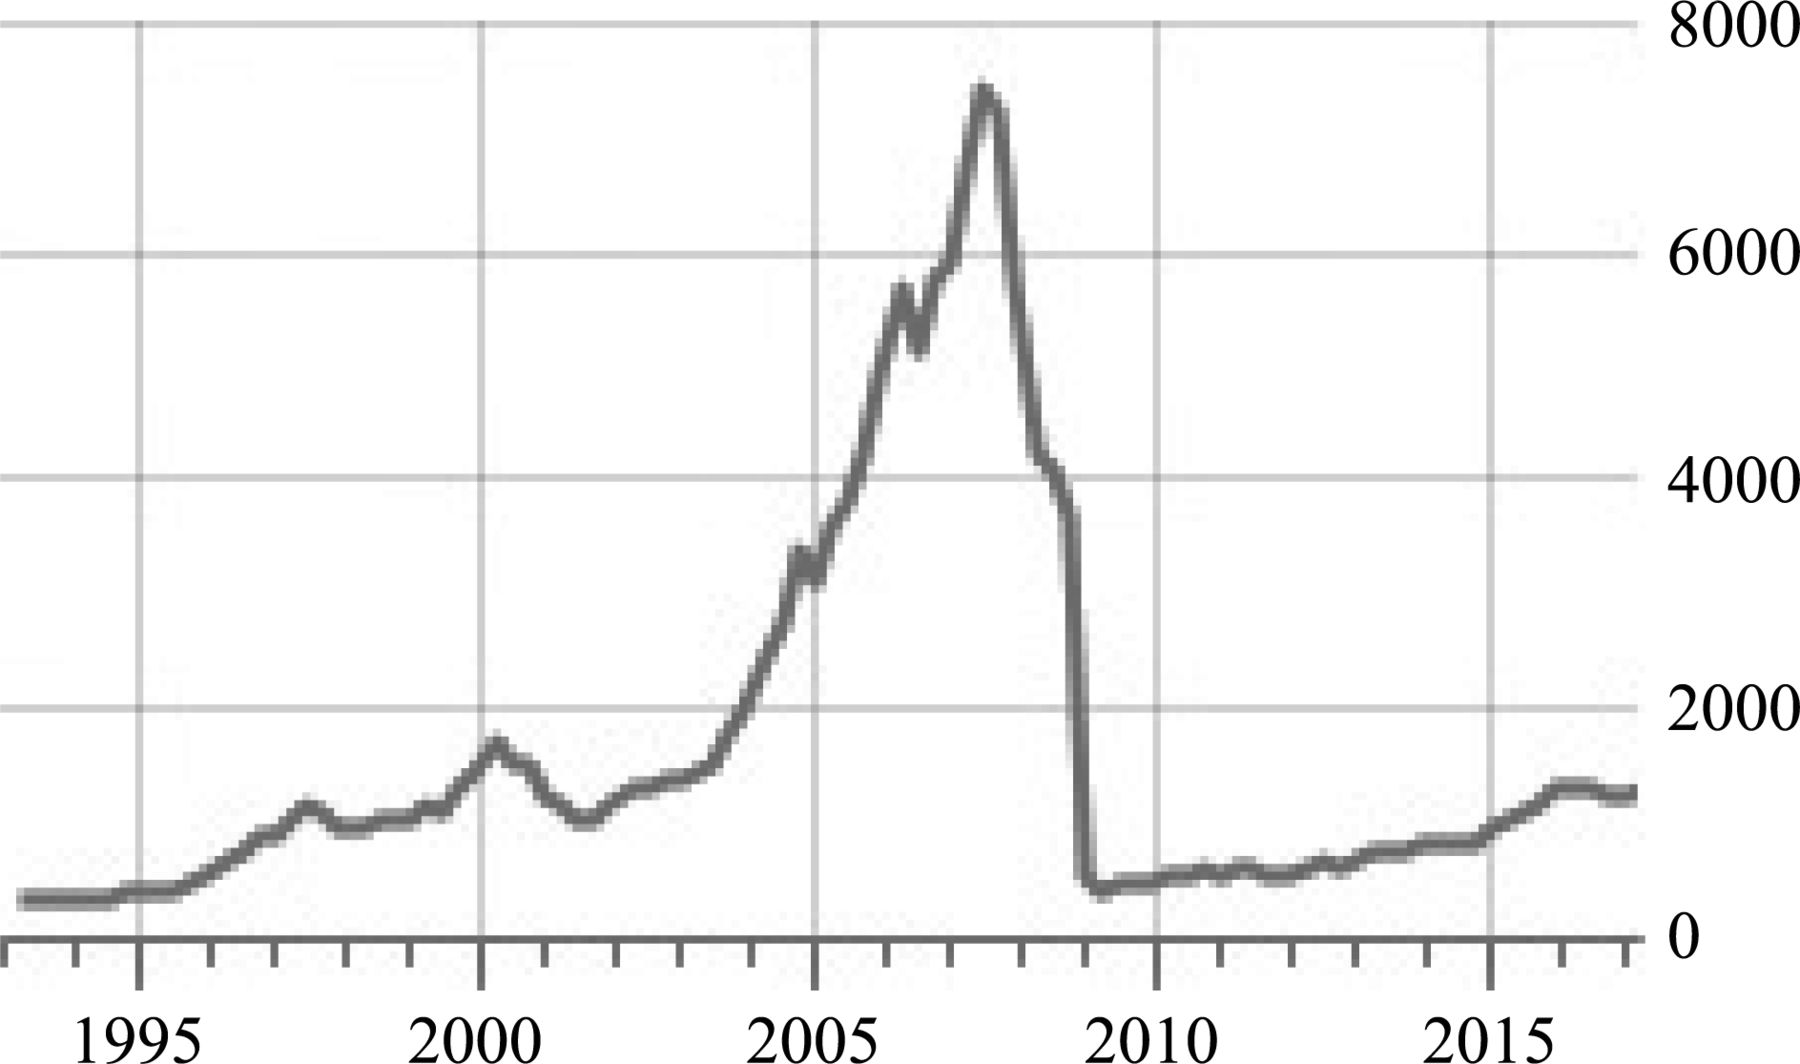 Return Predictability and Efficient Market Hypothesis